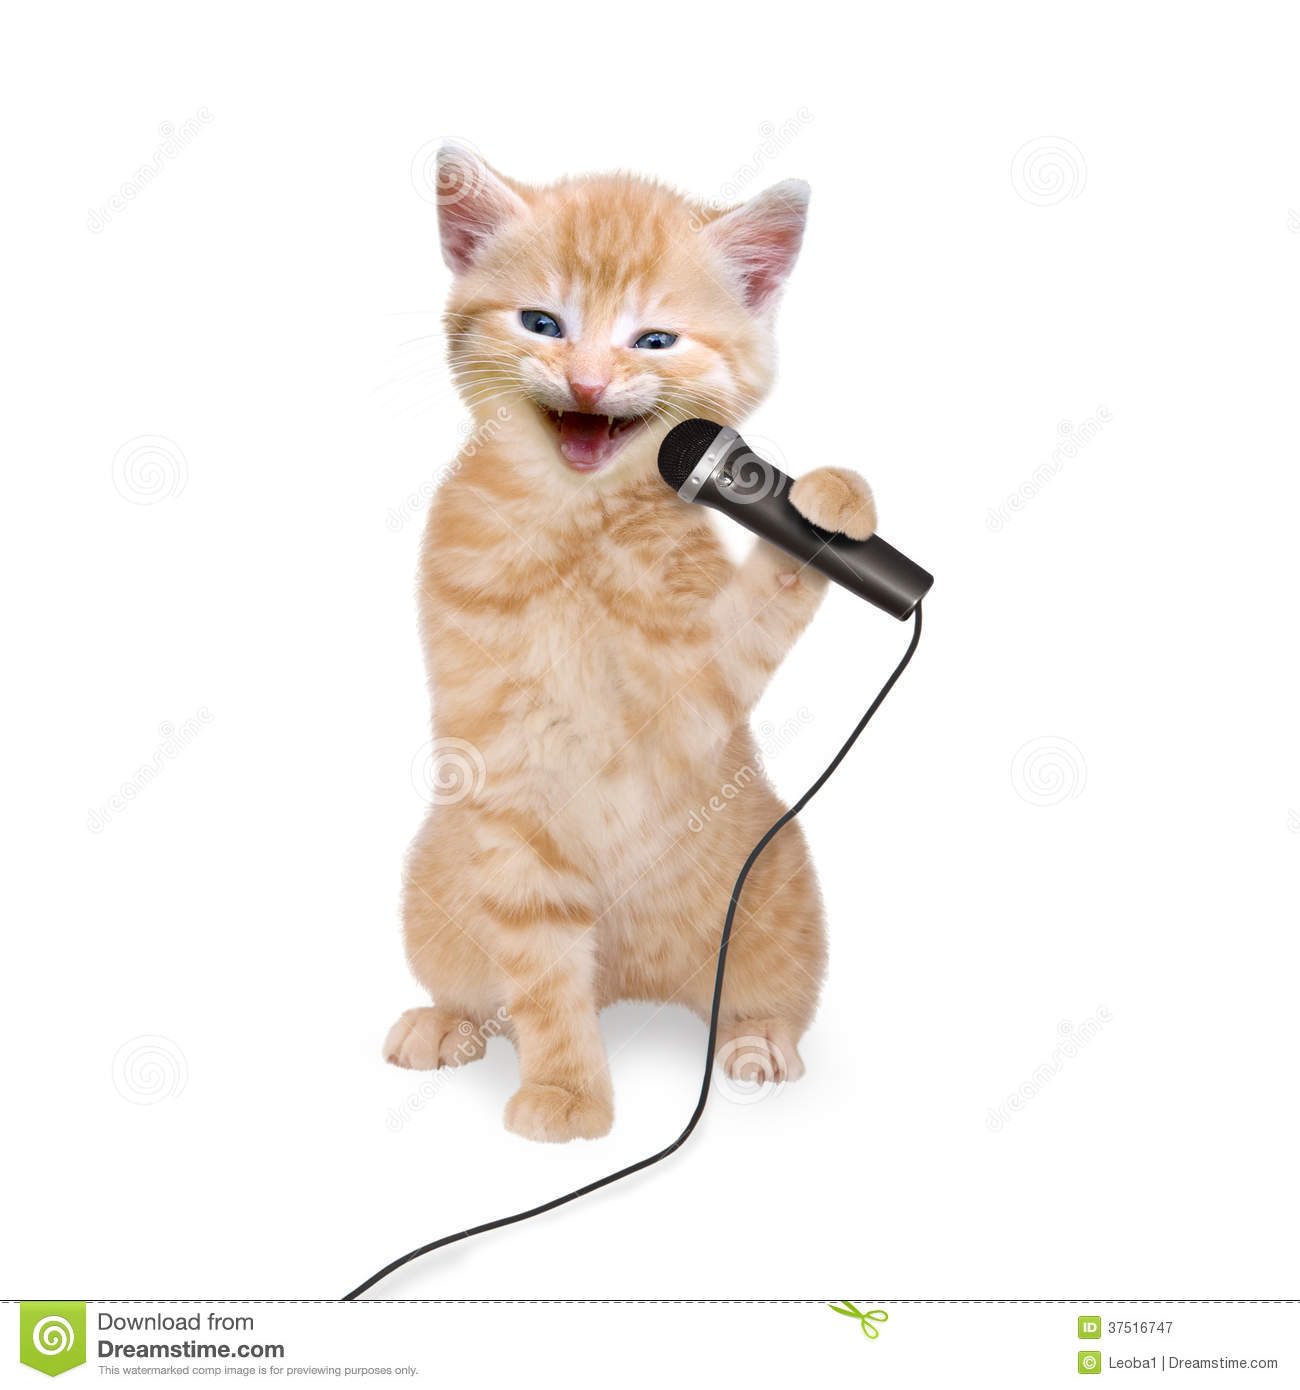 Cat Kitten Singing Into Microphone On White Background